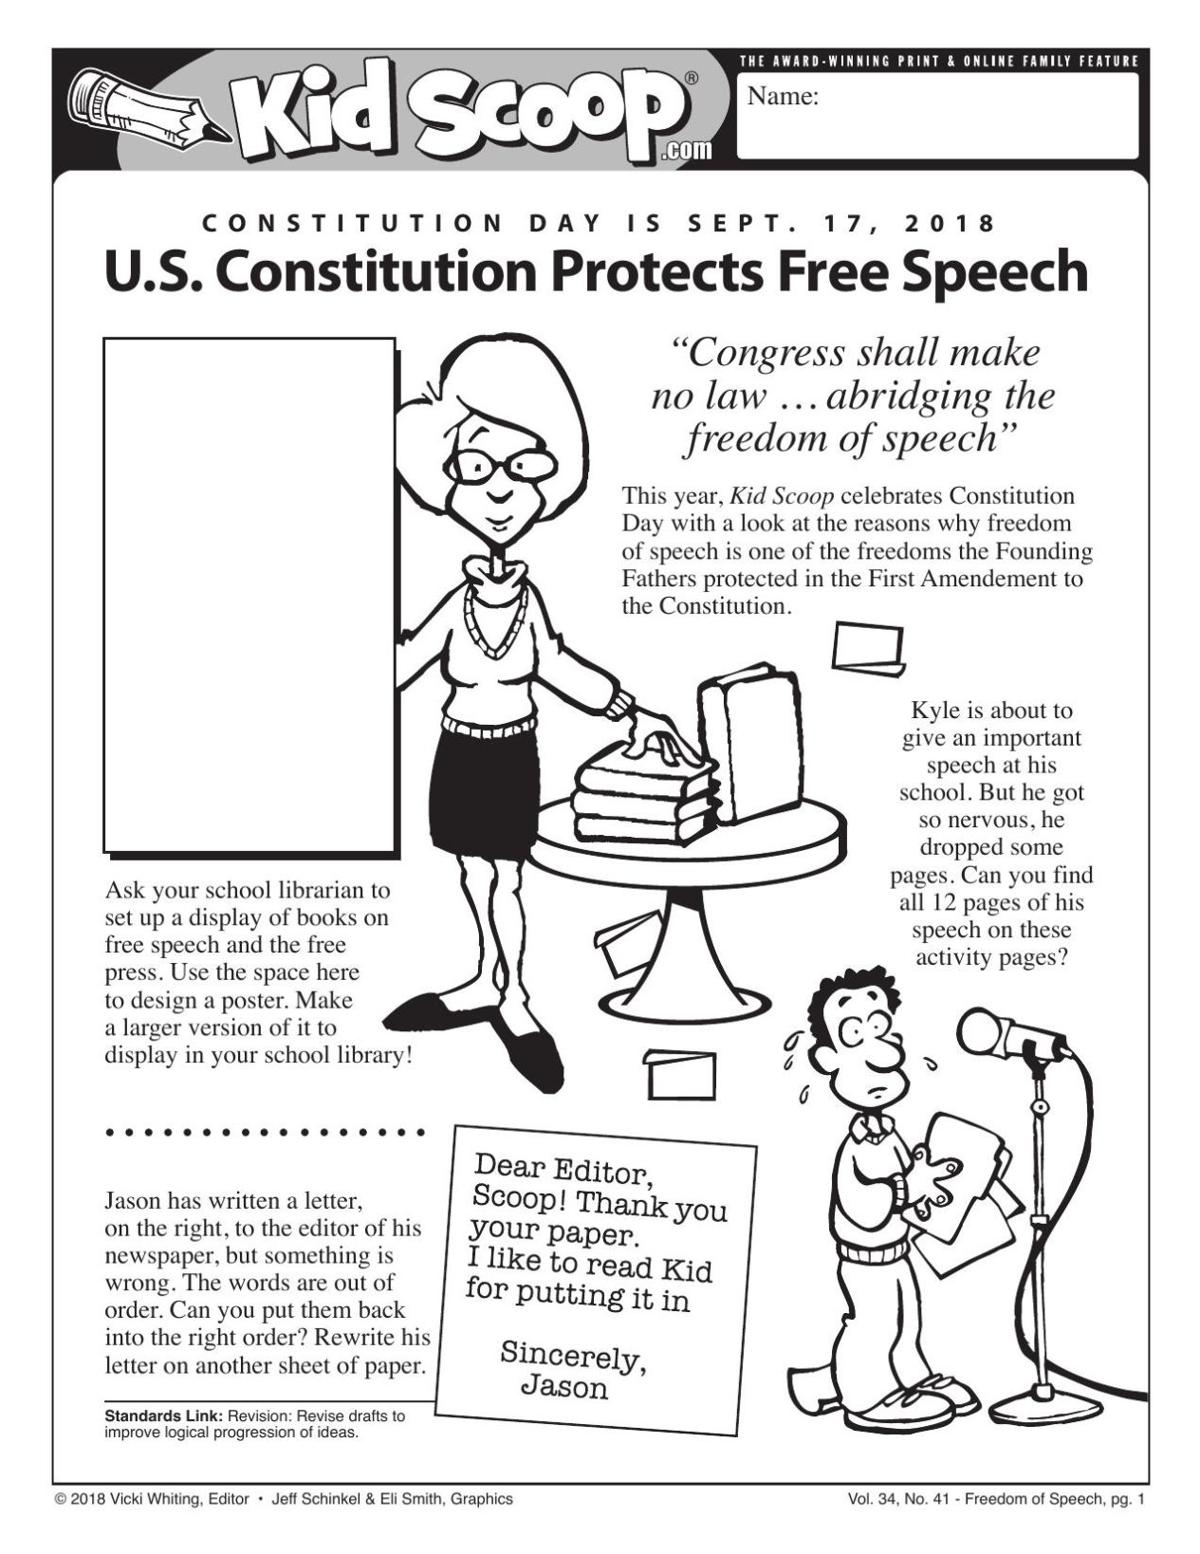 U.S. Constitution Protects Free Speech